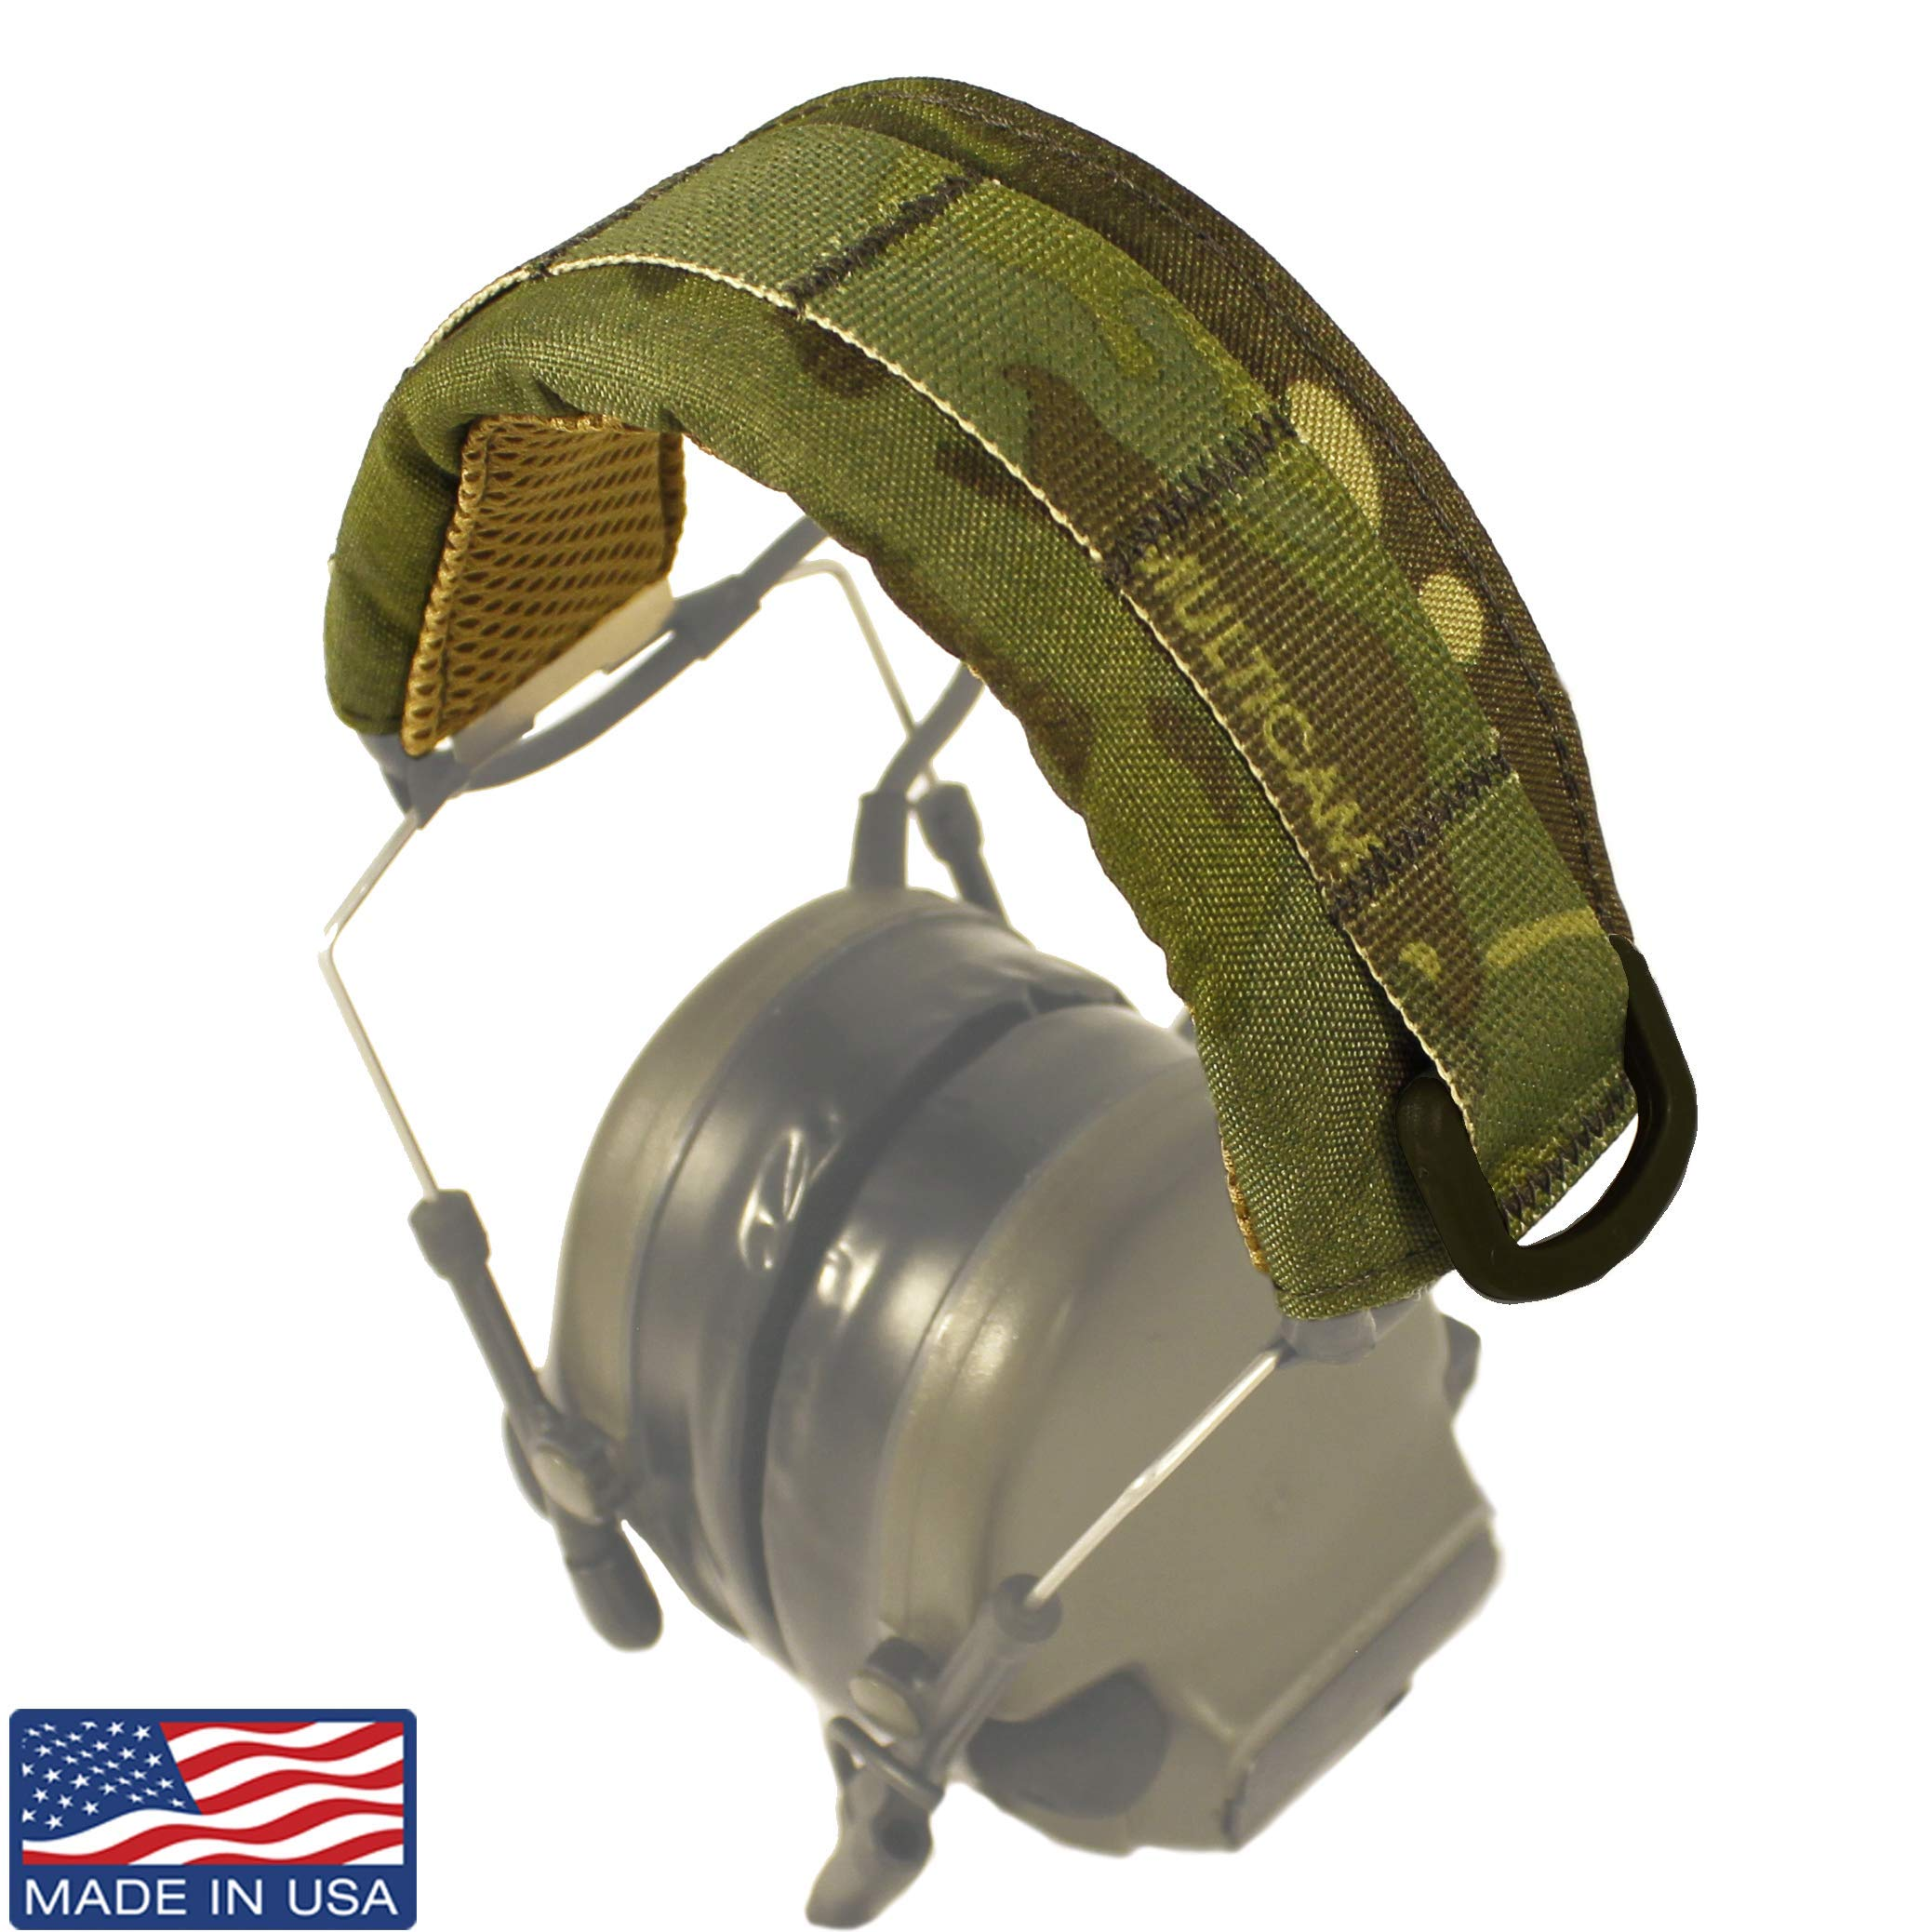 U.S. Tactical Sewing USTS Advanced Modular Headset Cover (Multicam Tropic) by U.S. Tactical Sewing